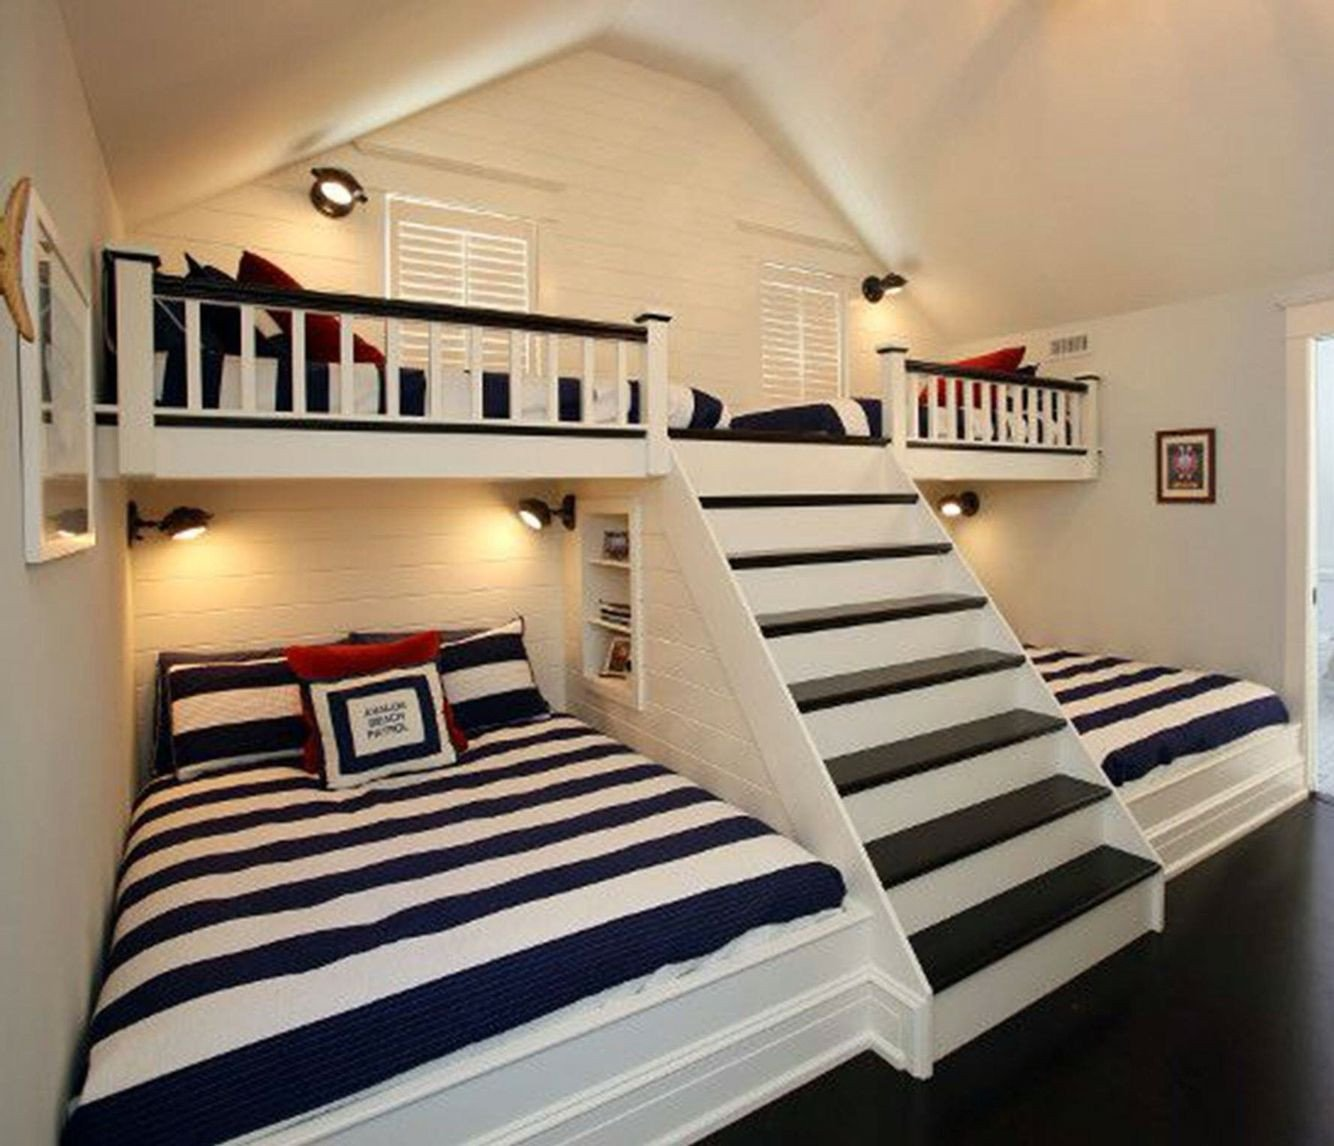 Kids Bunk Bed Bedroom Set New Kids Room for Our Tiny House I Love the Semiprivate